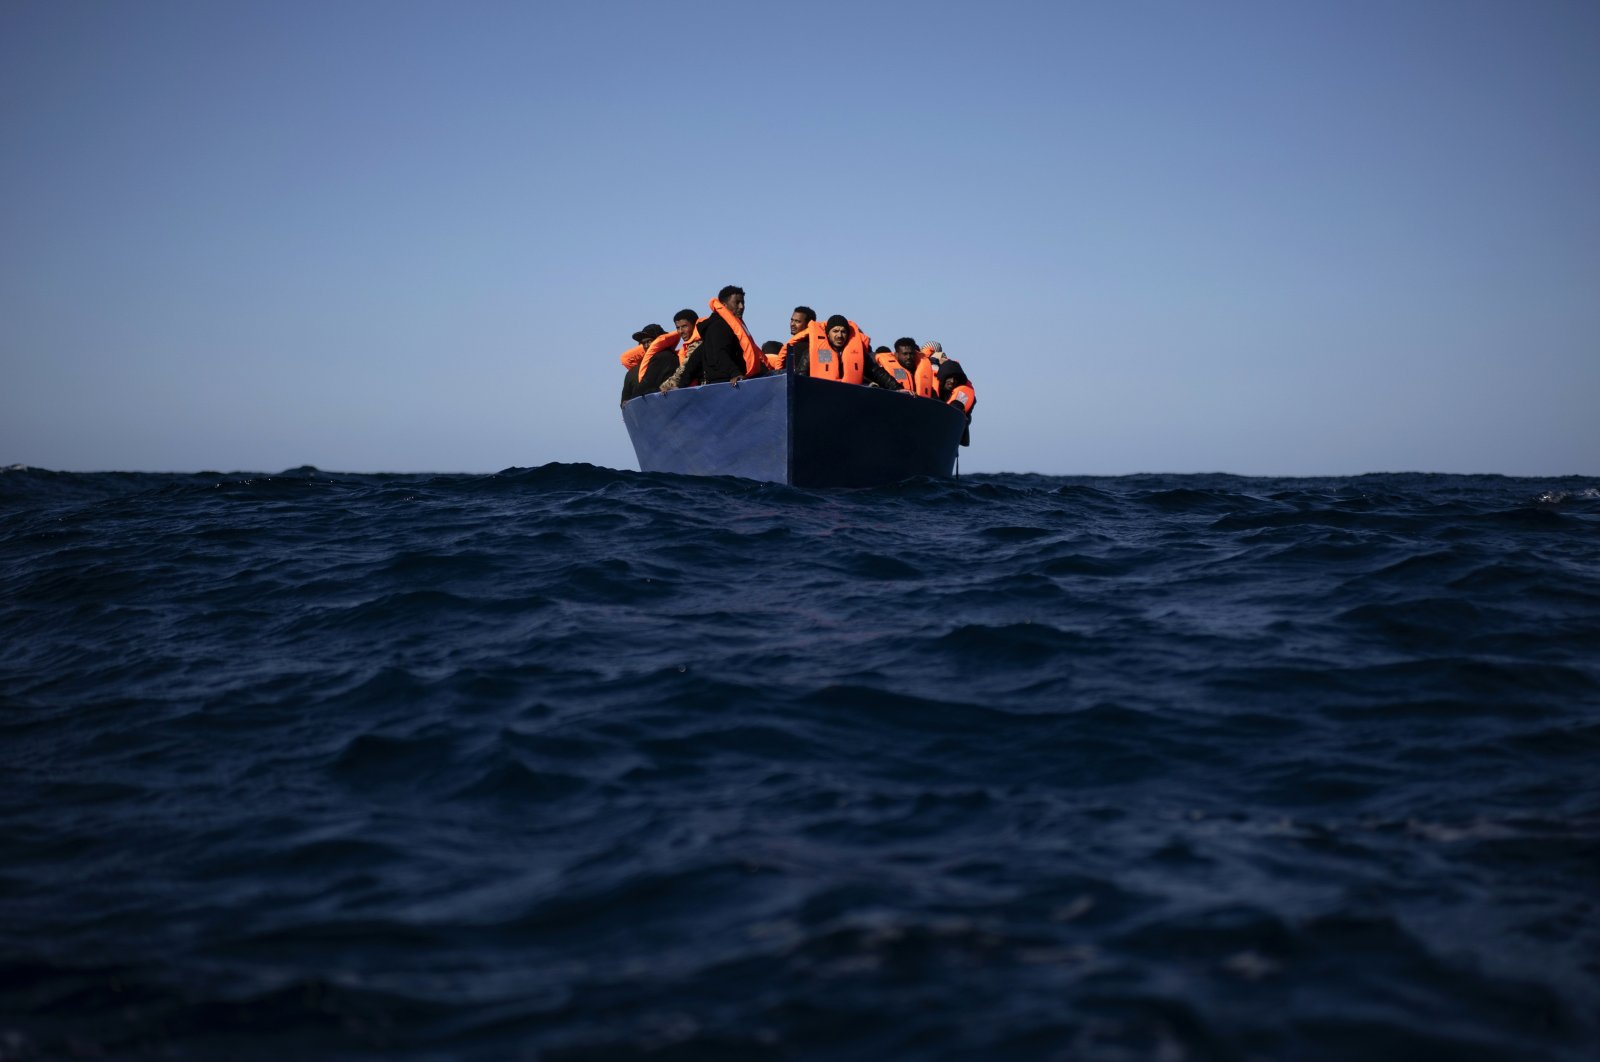 Migrants from Eritrea, Egypt, Syria and Sudan, wait to be assisted by aid workers of the Spanish NGO Open Arms, after fleeing Libya on board a precarious wooden boat in the Mediterranean sea, about 177 kilometers (110 miles) north of Libya, on Saturday, Jan. 2, 2021. (AP Photo)